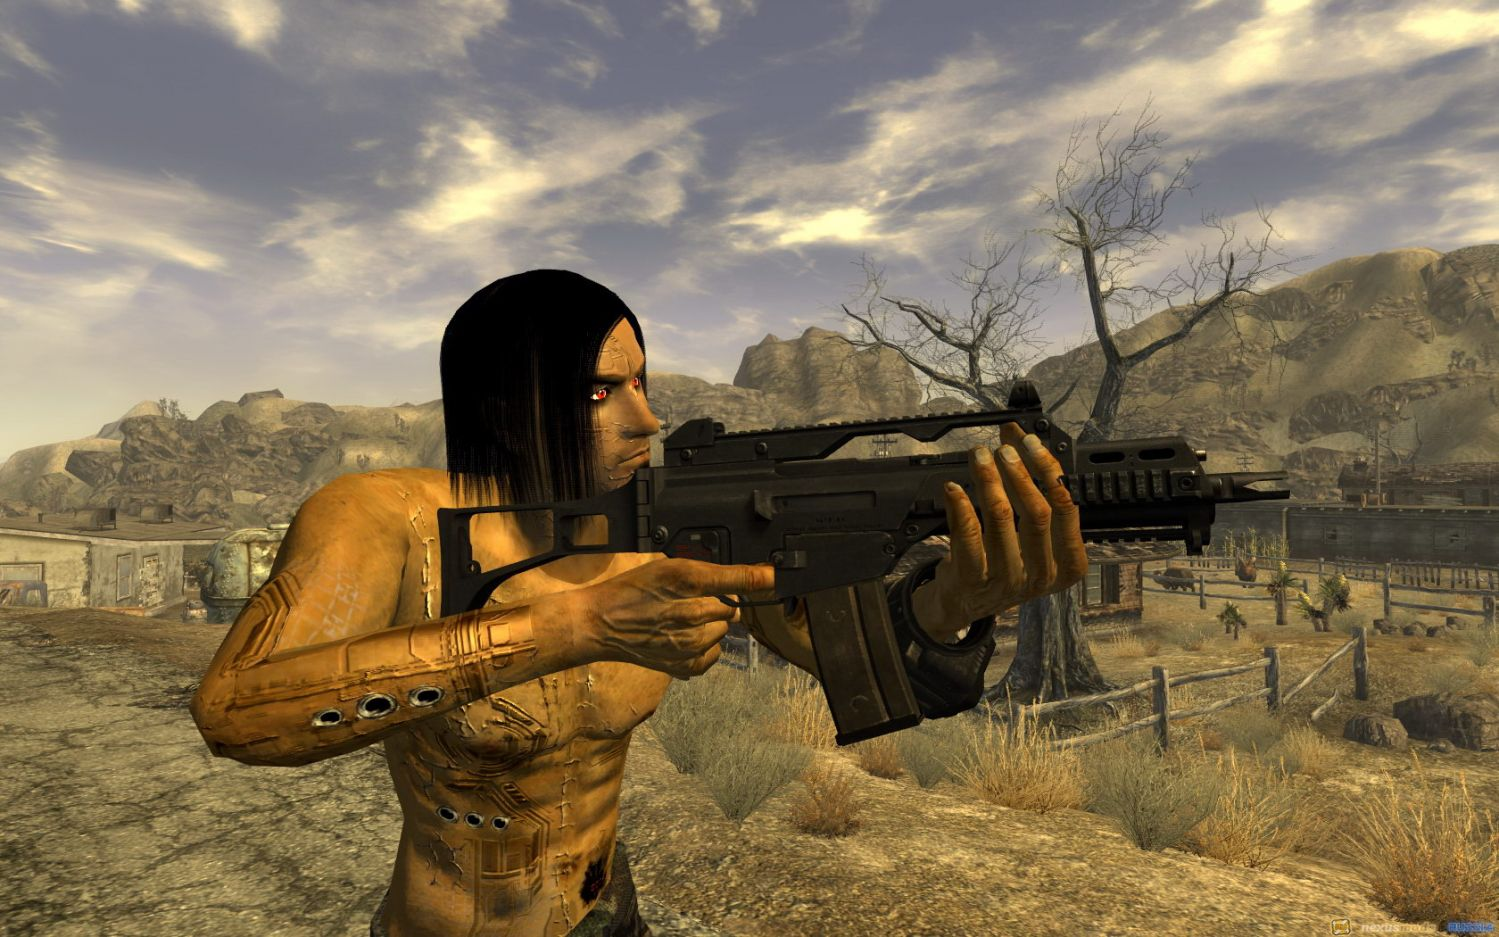 Fallout (video game series), coilgun (invention), carl friedrich gauss (academic), fallout 4, action